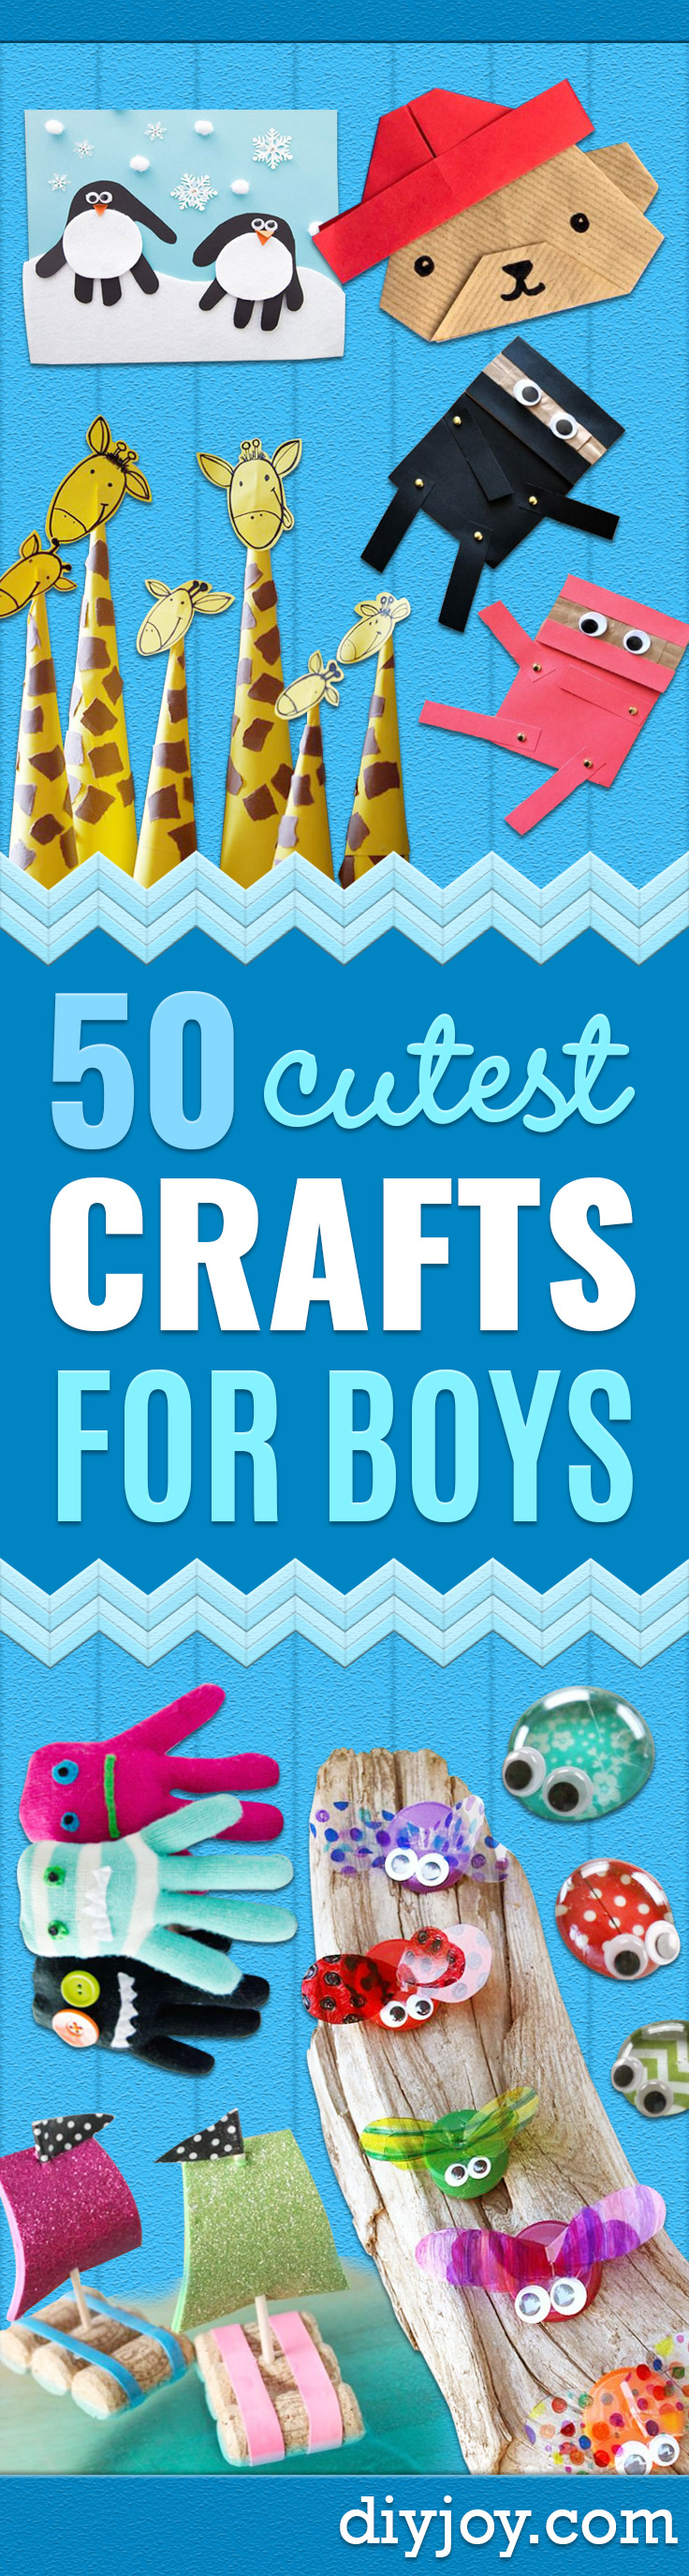 Crafts for Boys - Cute Crafts for Young Boys, Toddlers and School Children - Fun Paints to Make, Arts and Craft Ideas, Wall Art Projects, Colorful Alphabet and Glue Crafts, String Art, Painting Lessons, Cheap Project Tutorials and Inexpensive Things for Kids to Make at Home - Cute Room Decor and DIY Gifts to Make for Mom and Dad http://diyjoy.com/crafts-for-boys